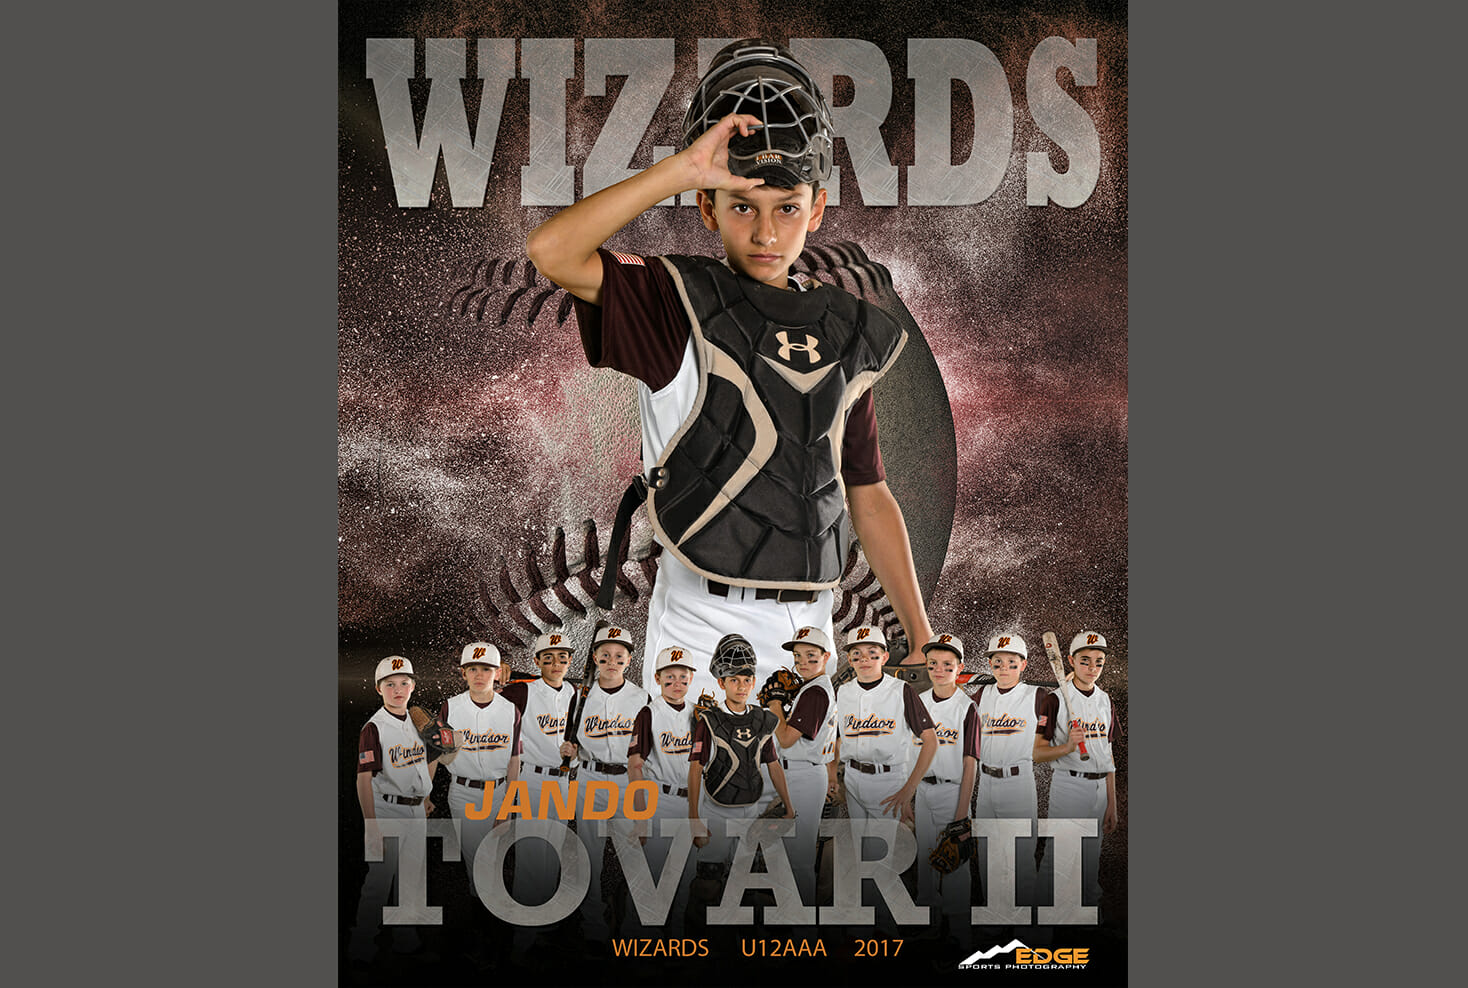 Windsor Wizard baseball sports photo